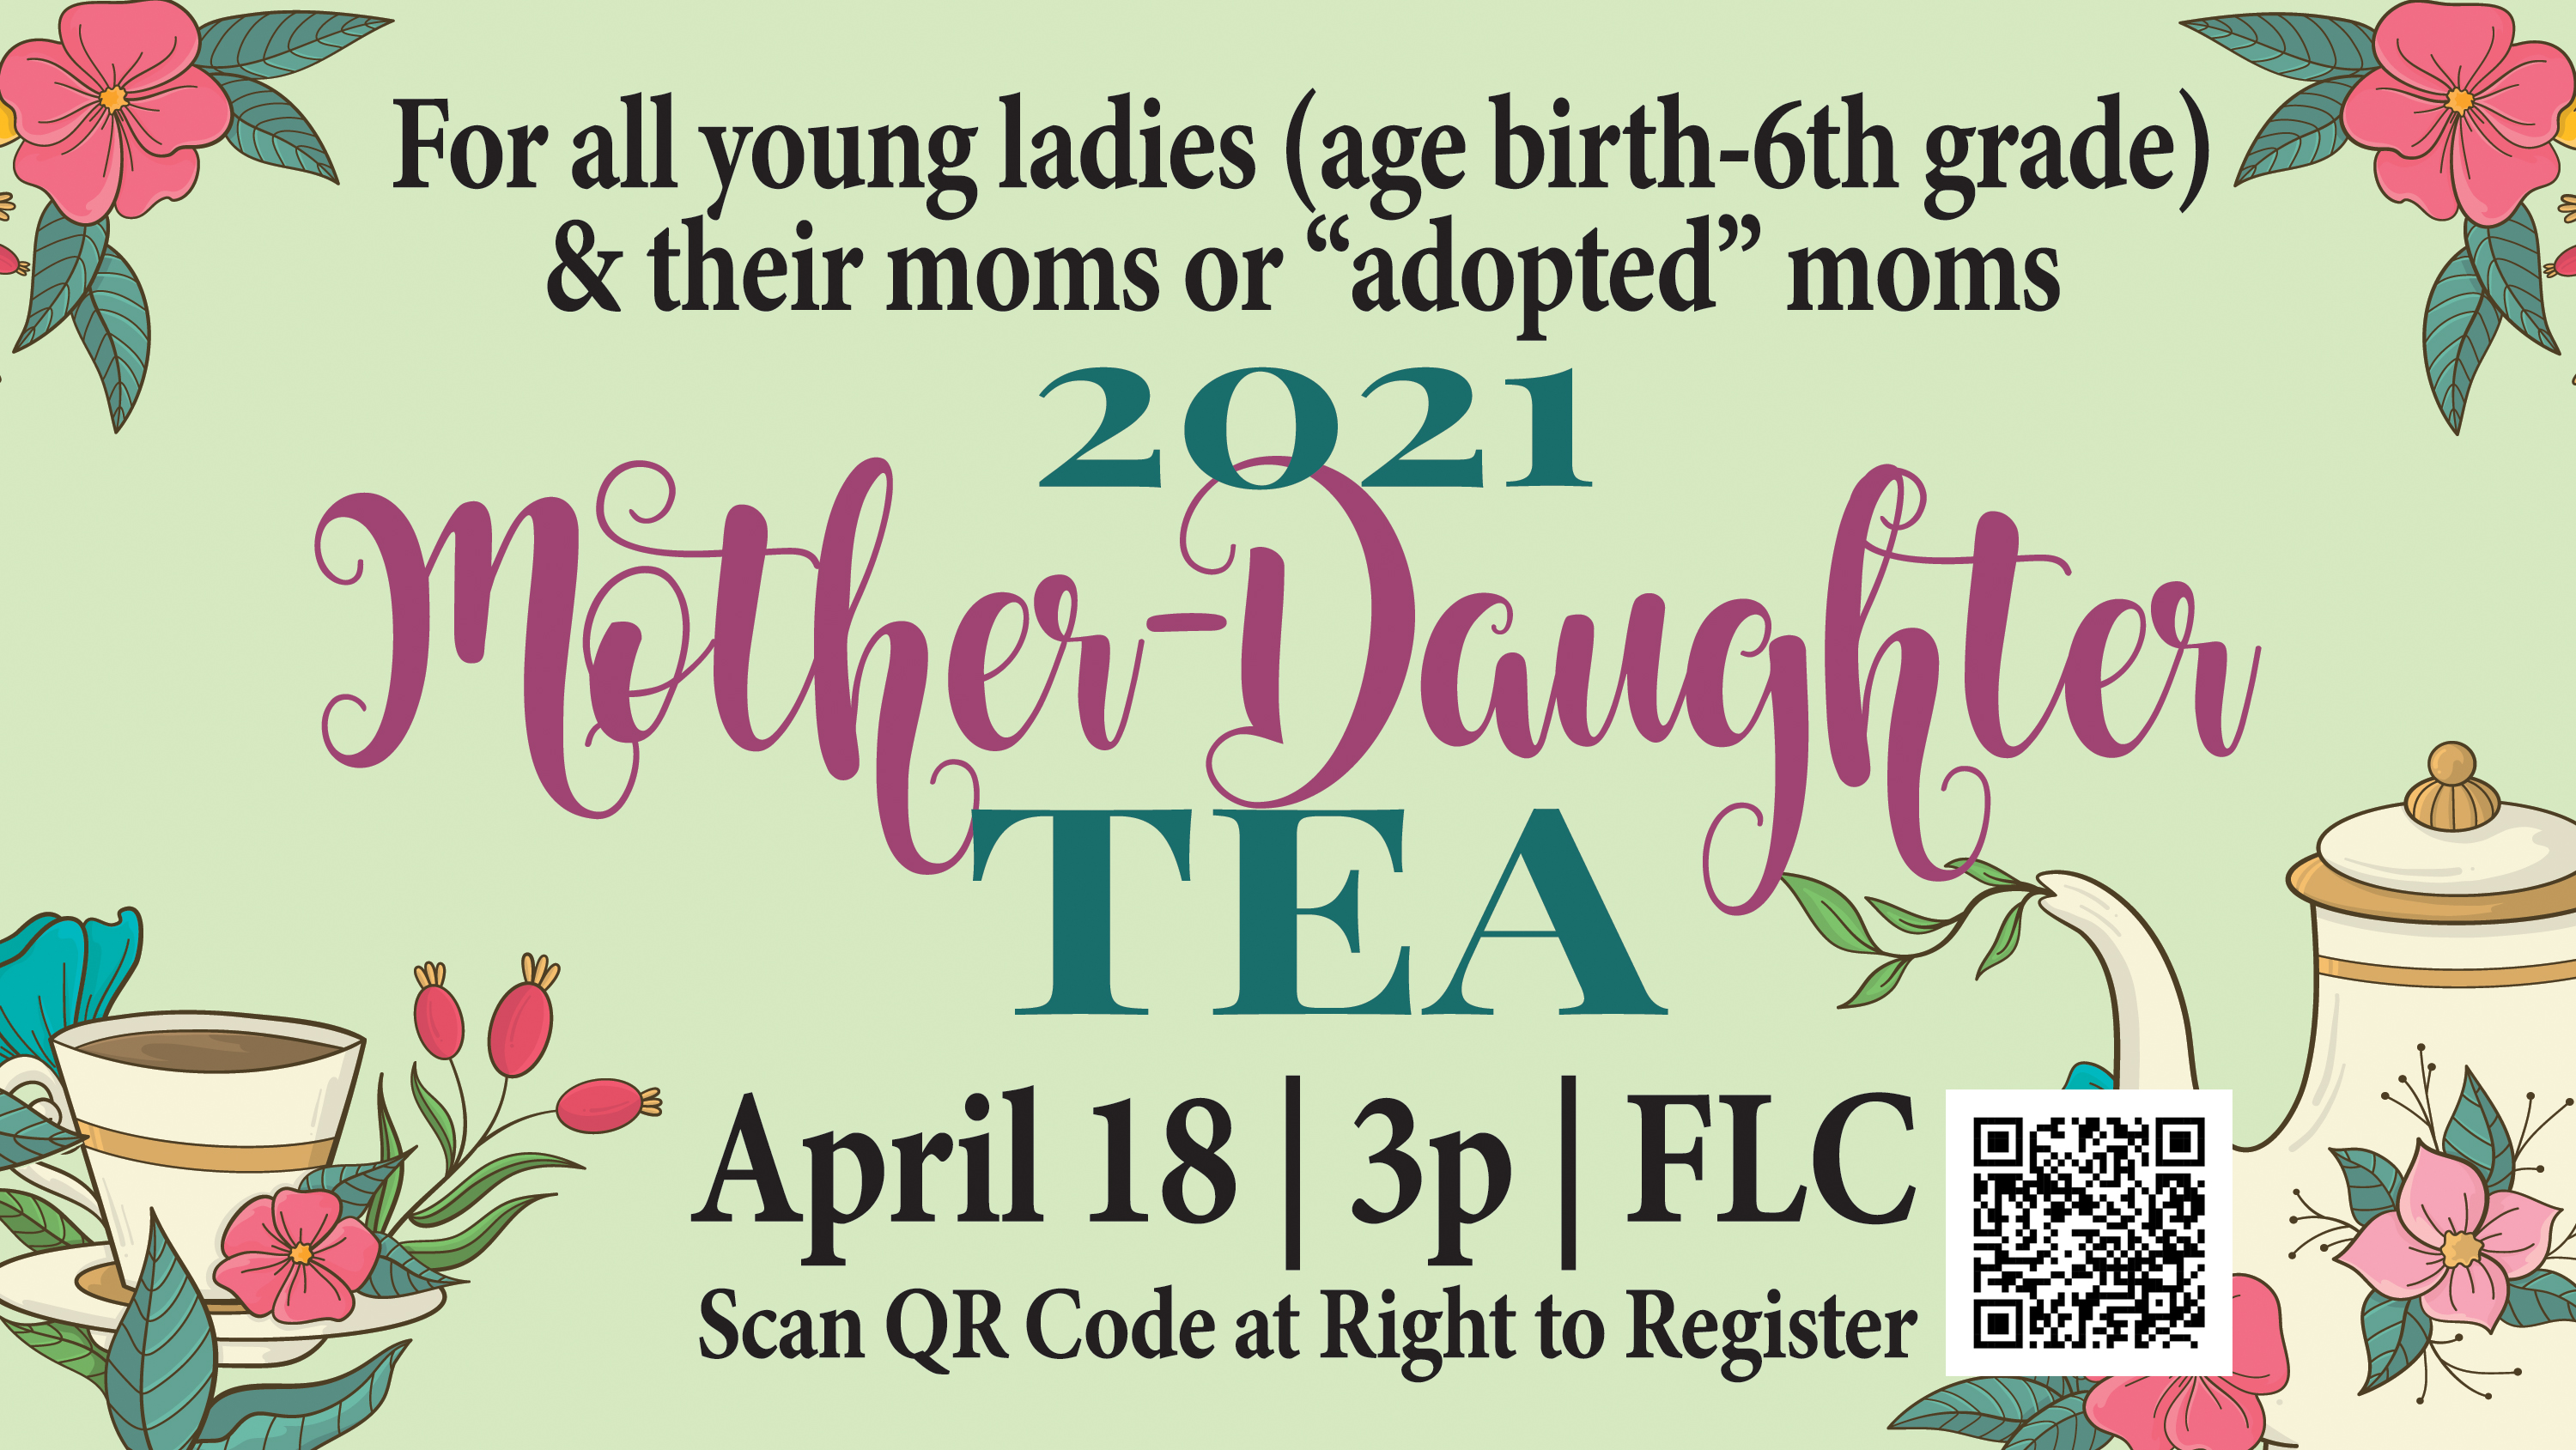 3  Mother-Daughter Tea ad 2021